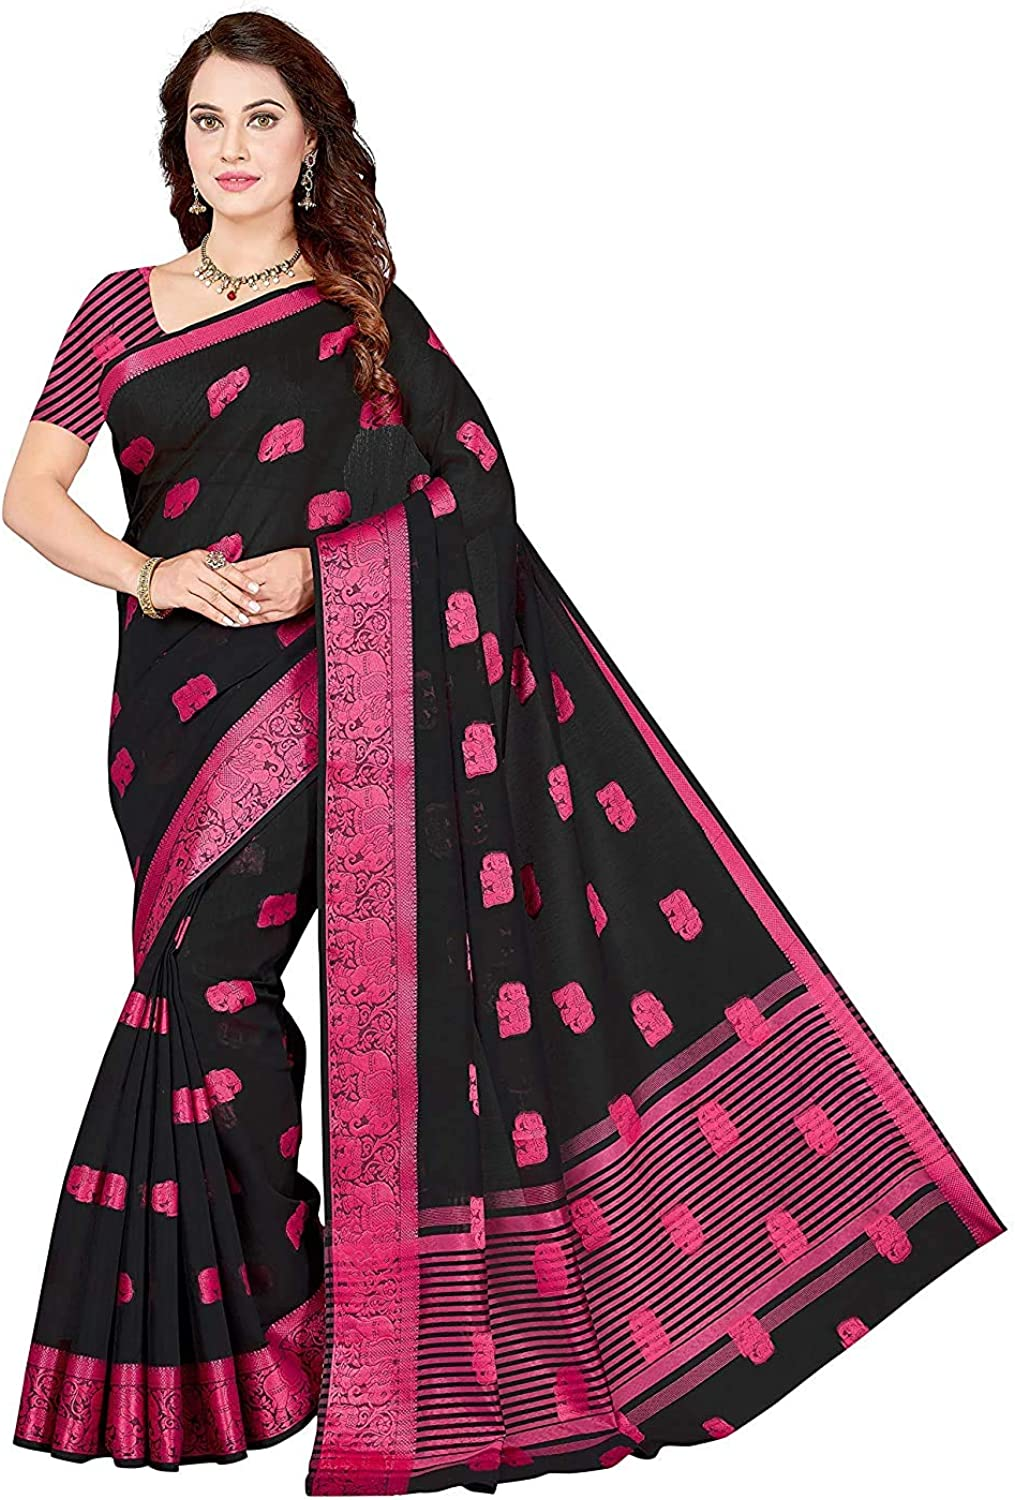 Max 55% OFF Women's Poly Chicago Mall Cotton Woven Saree Unstitched with Piece Ind Blouse